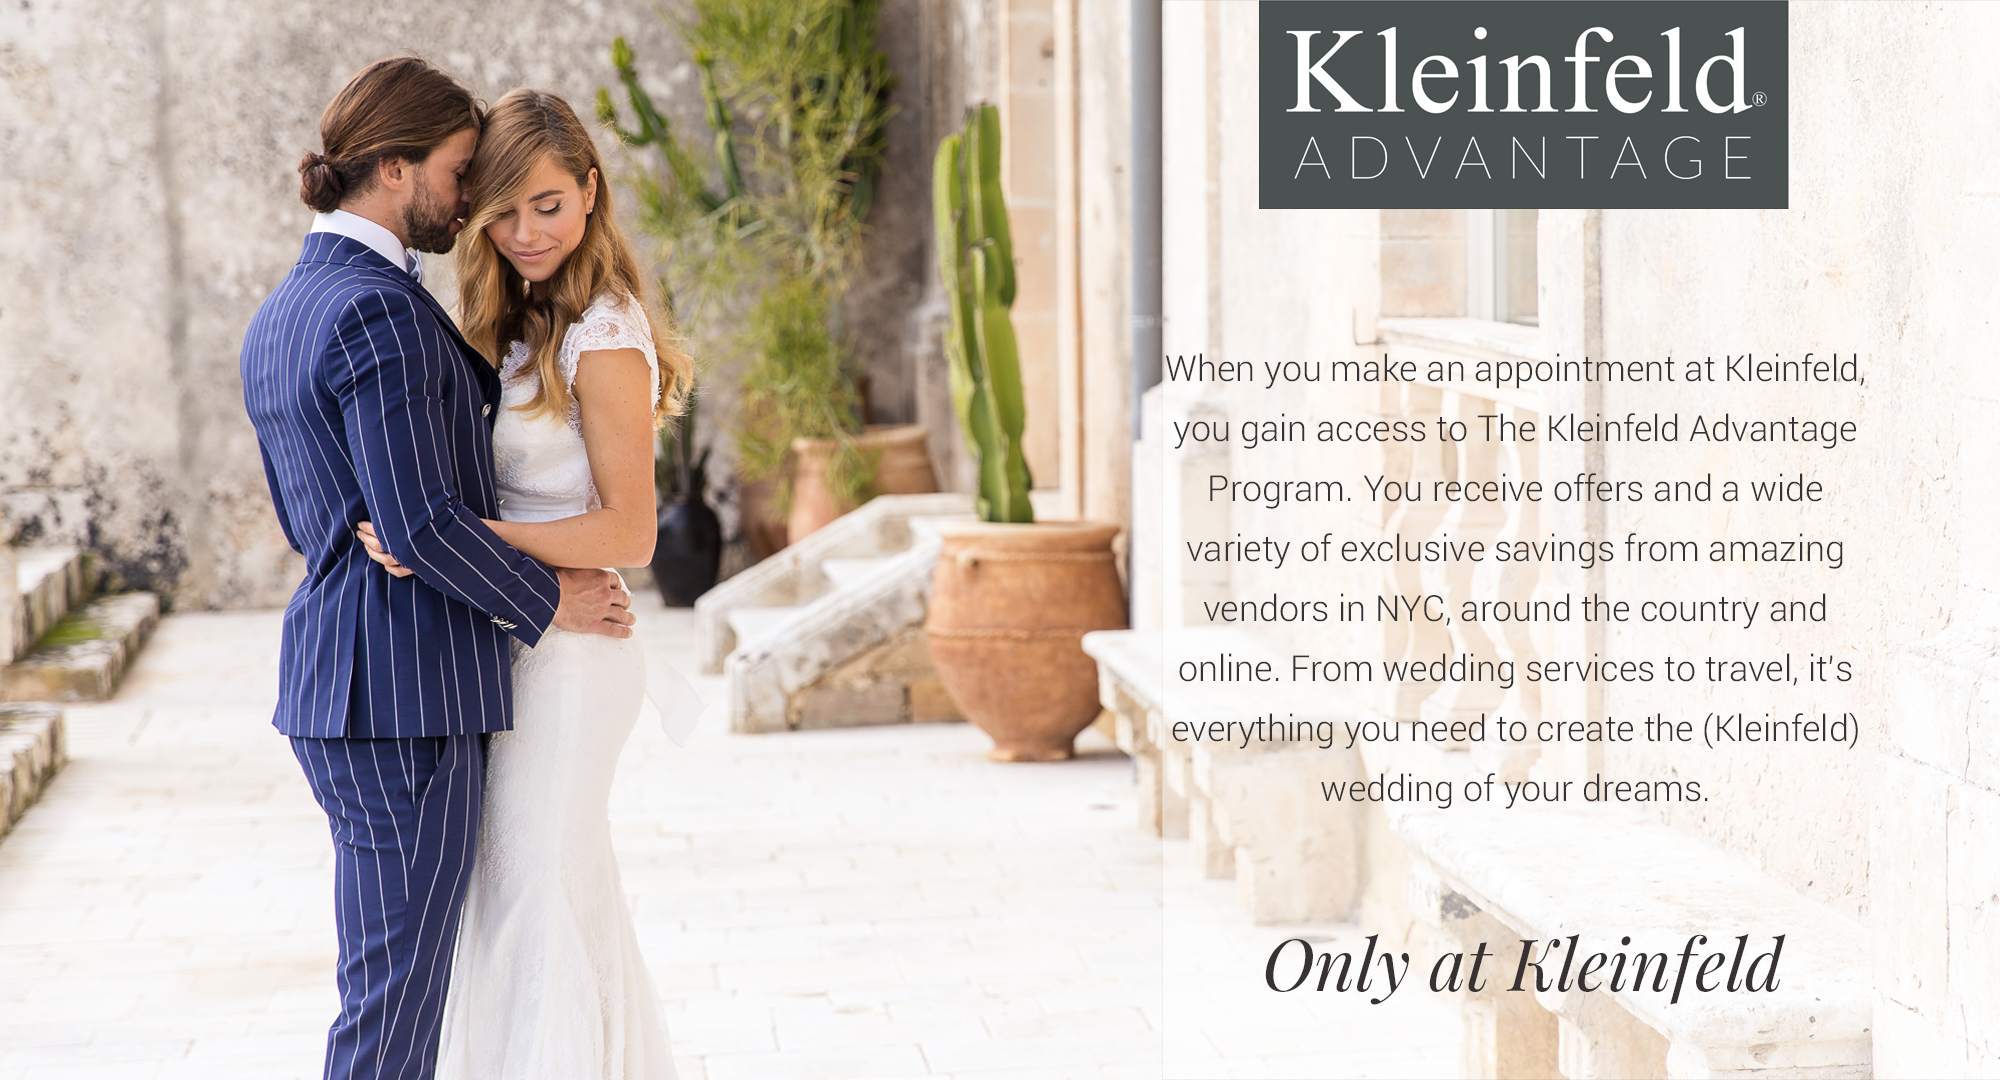 kleinfeld advantage main page header